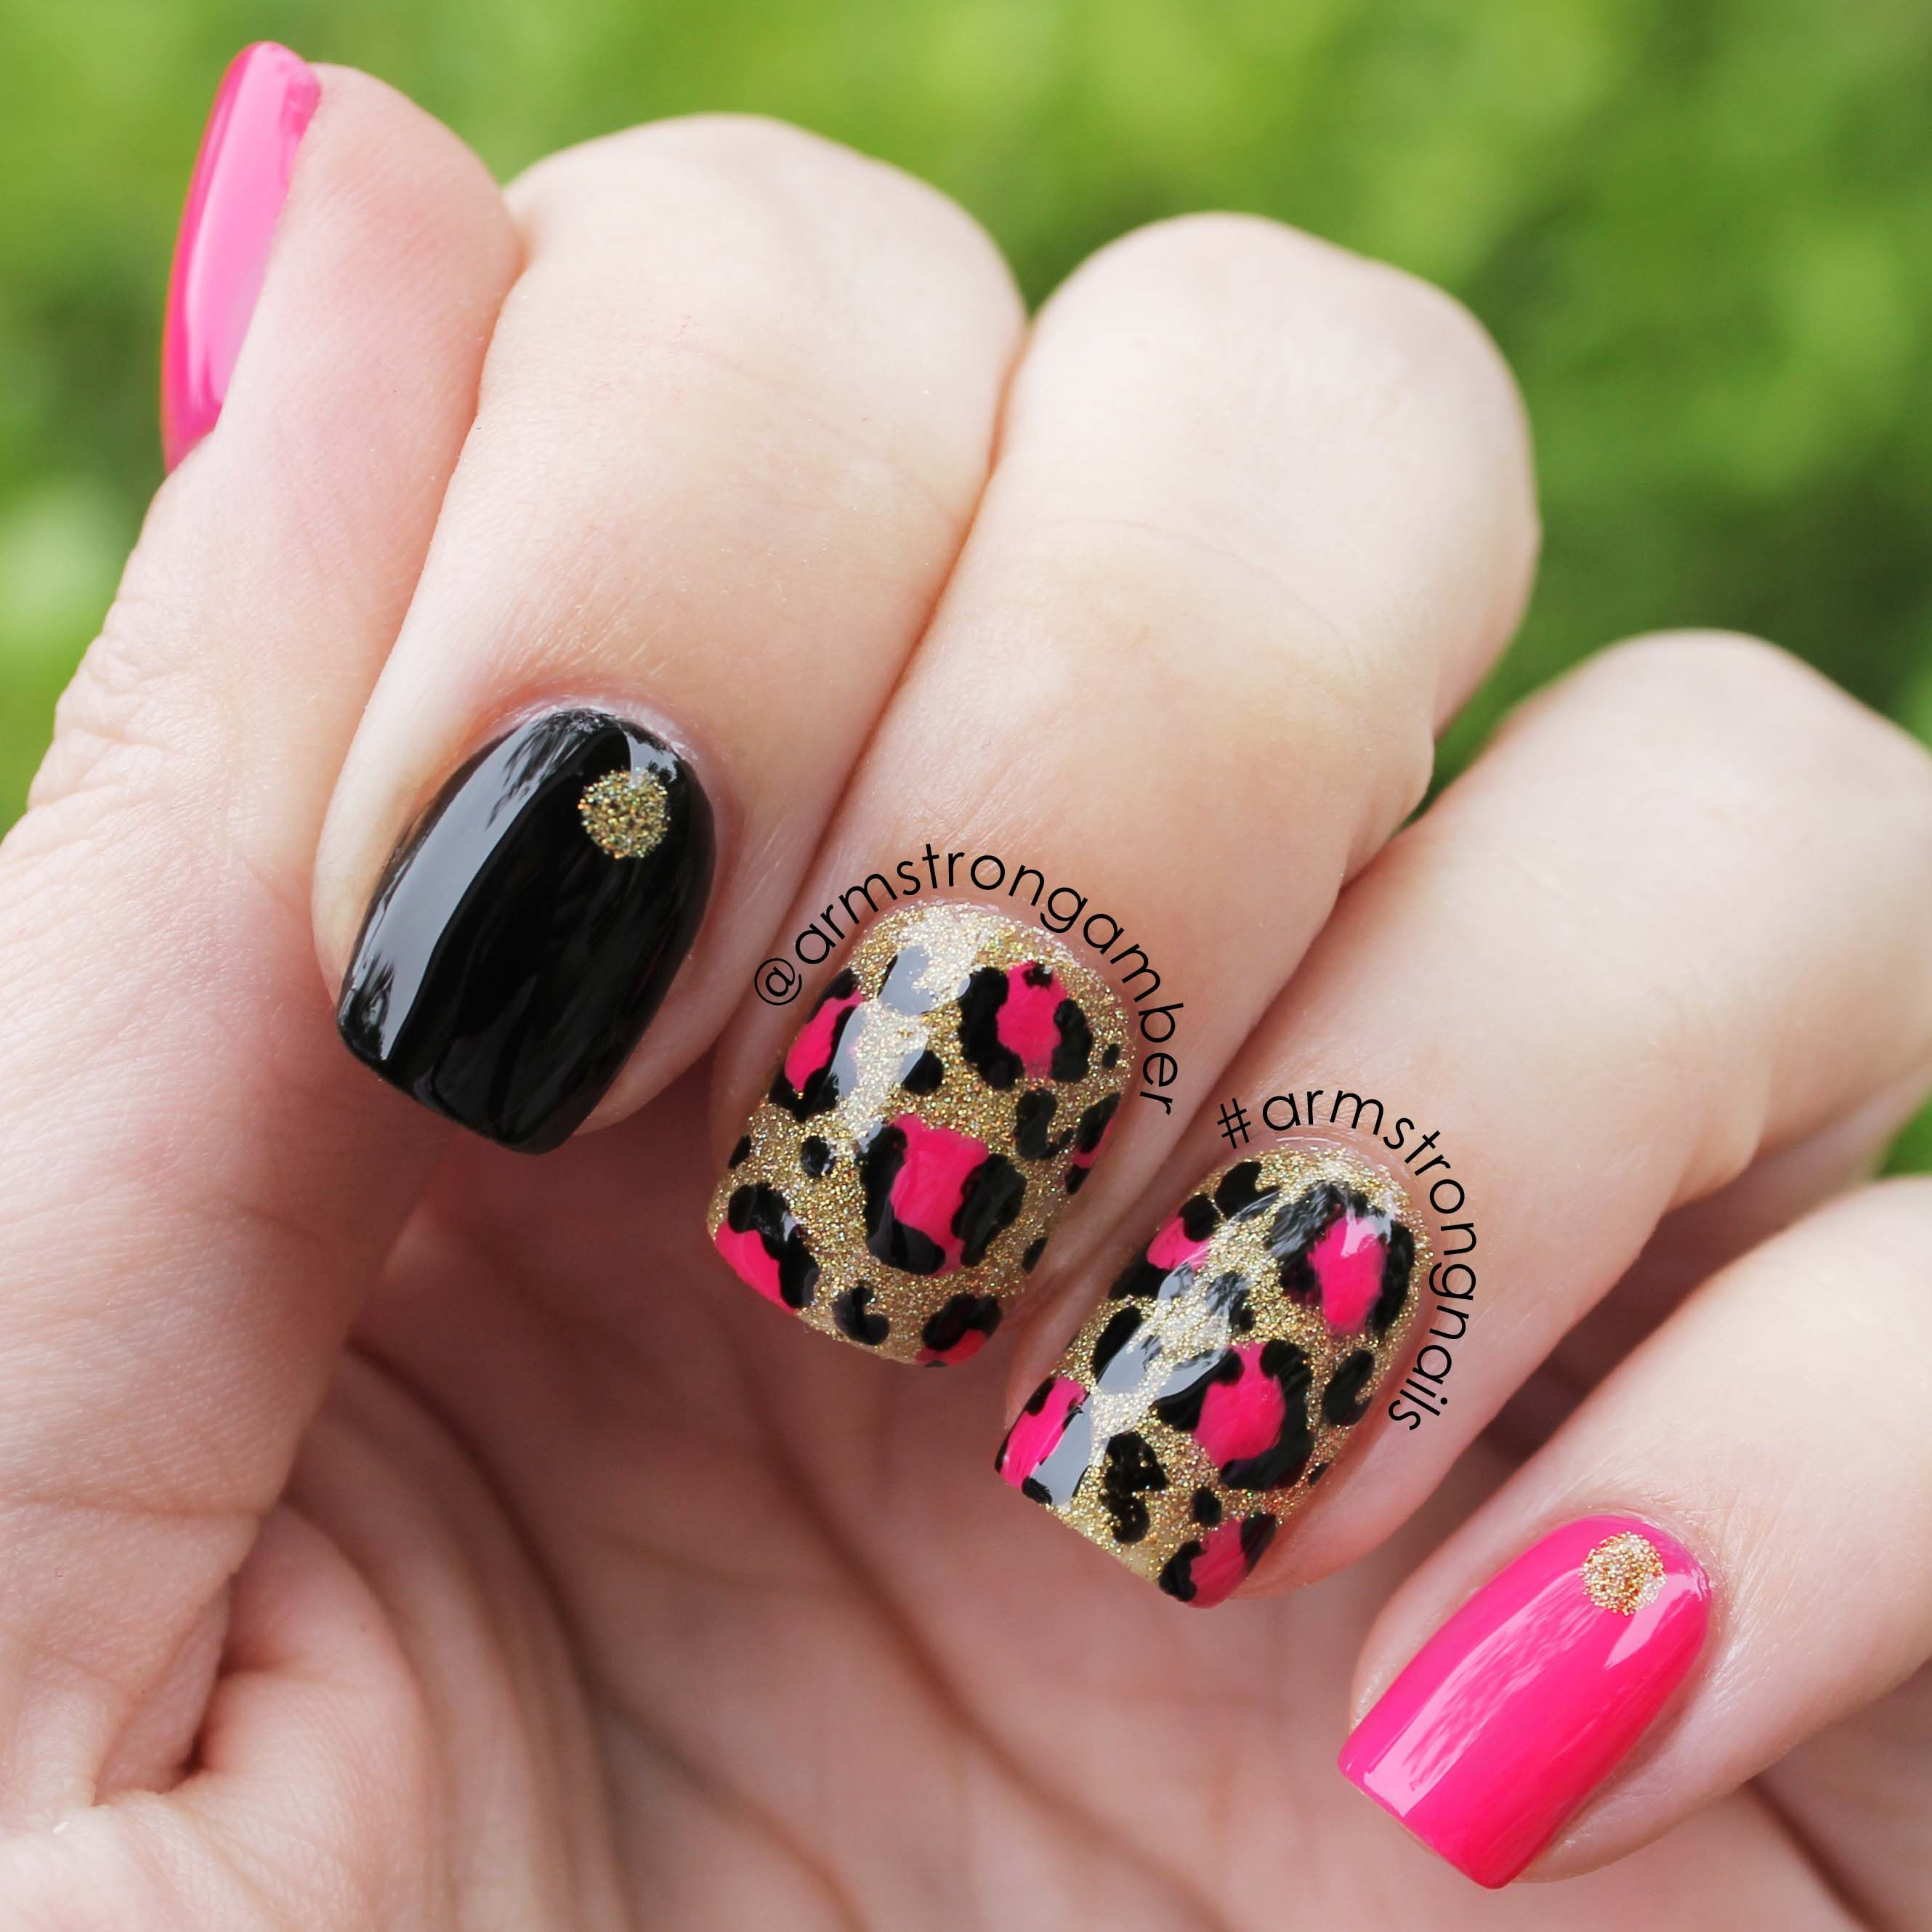 pink and black leopard nail art - by Amber Armstrong